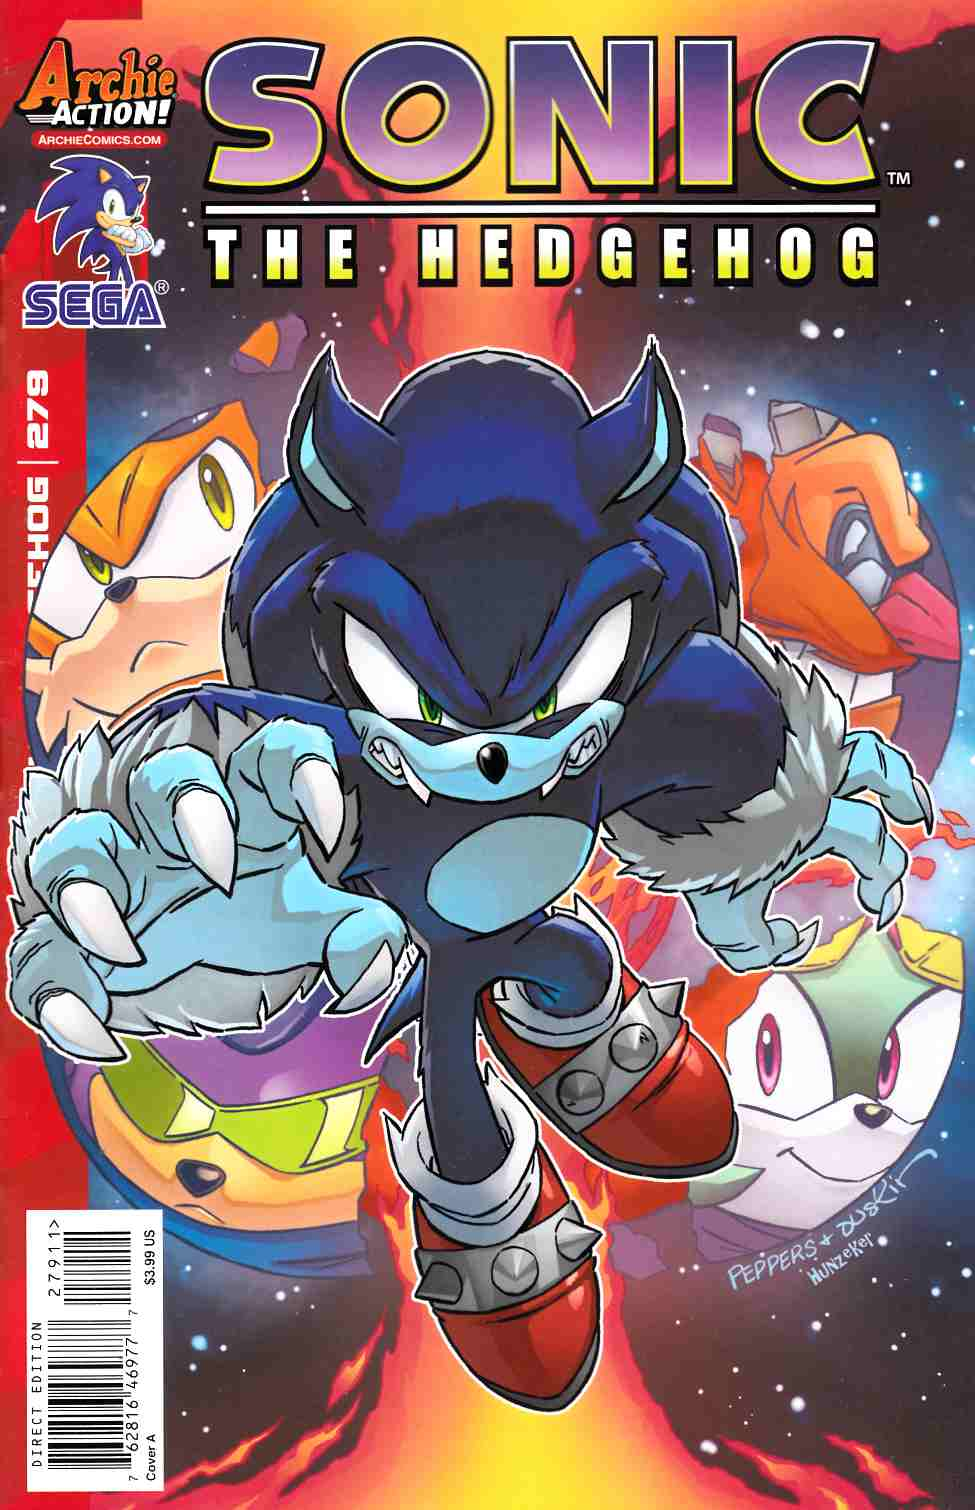 Sonic the Hedgehog #279 Cover A [Archie Comic]